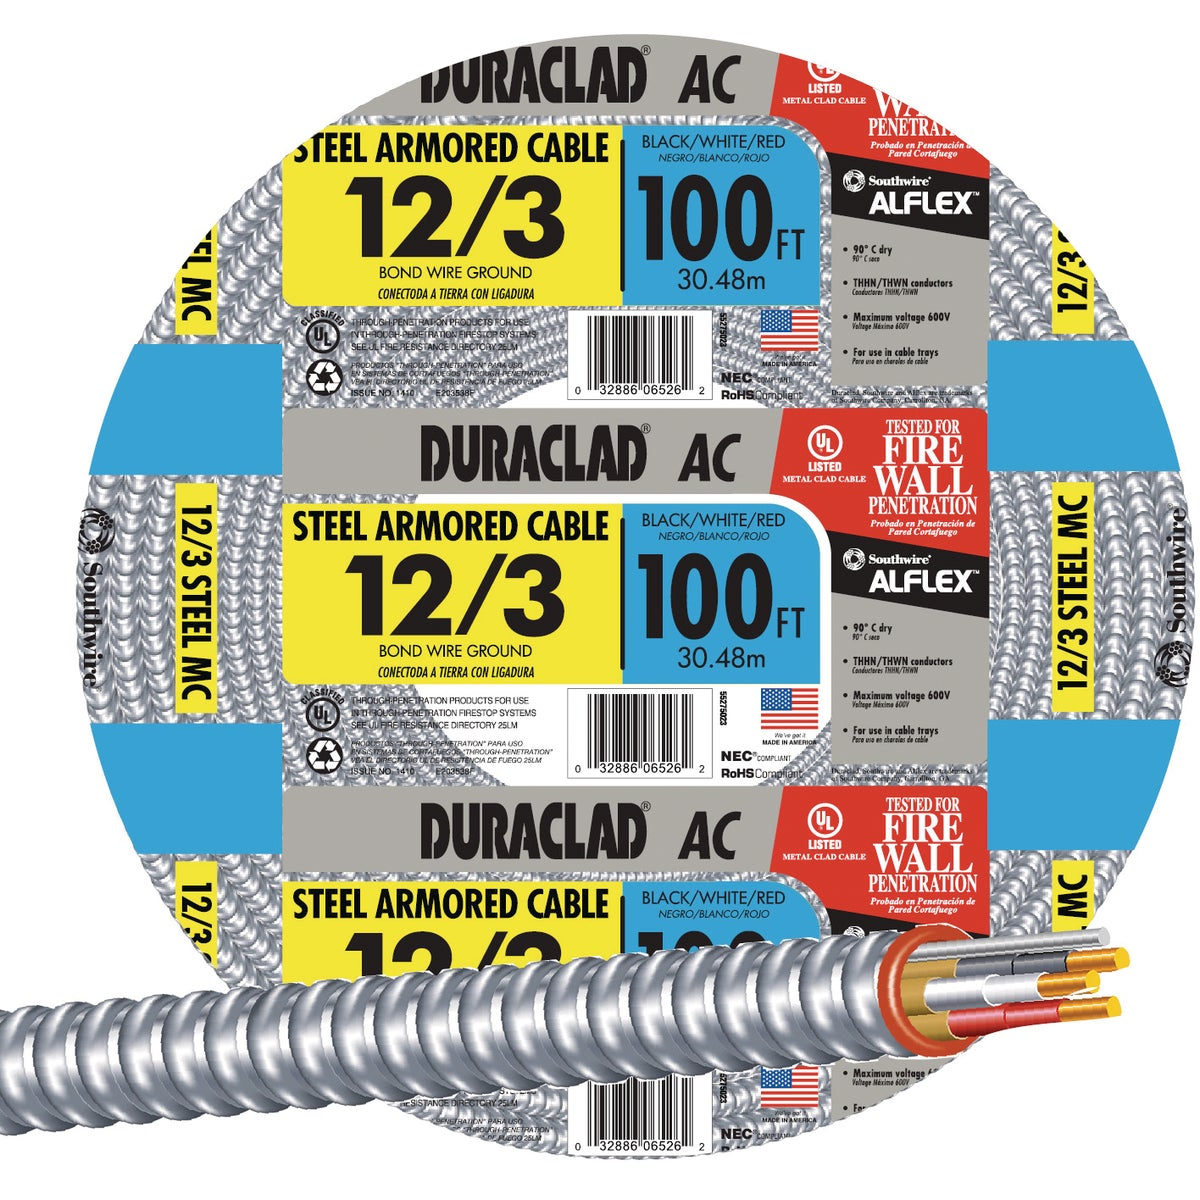 100' 12/3 STL ARMR CABLE - 55275023 by Southwire Company